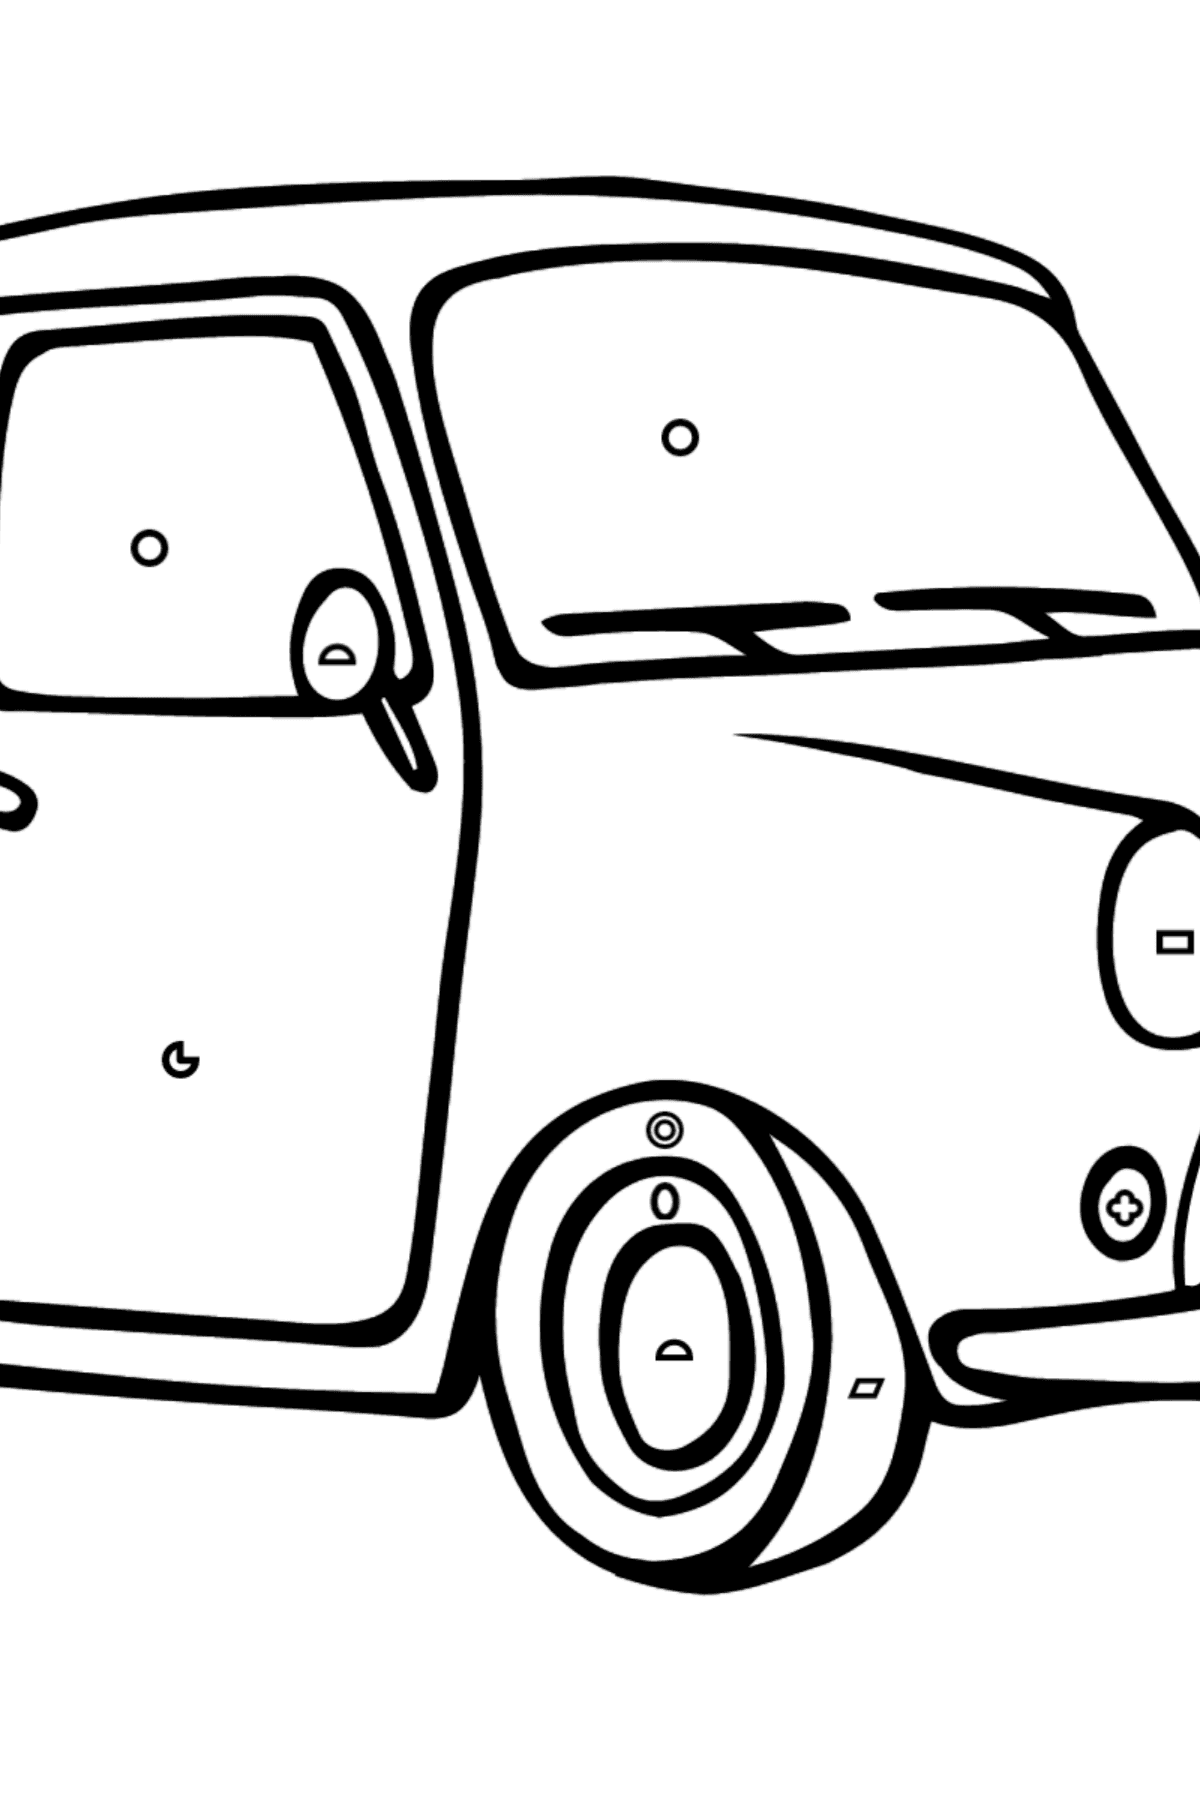 Fiat 500 coloring page (green car) - Coloring by Geometric Shapes for Kids